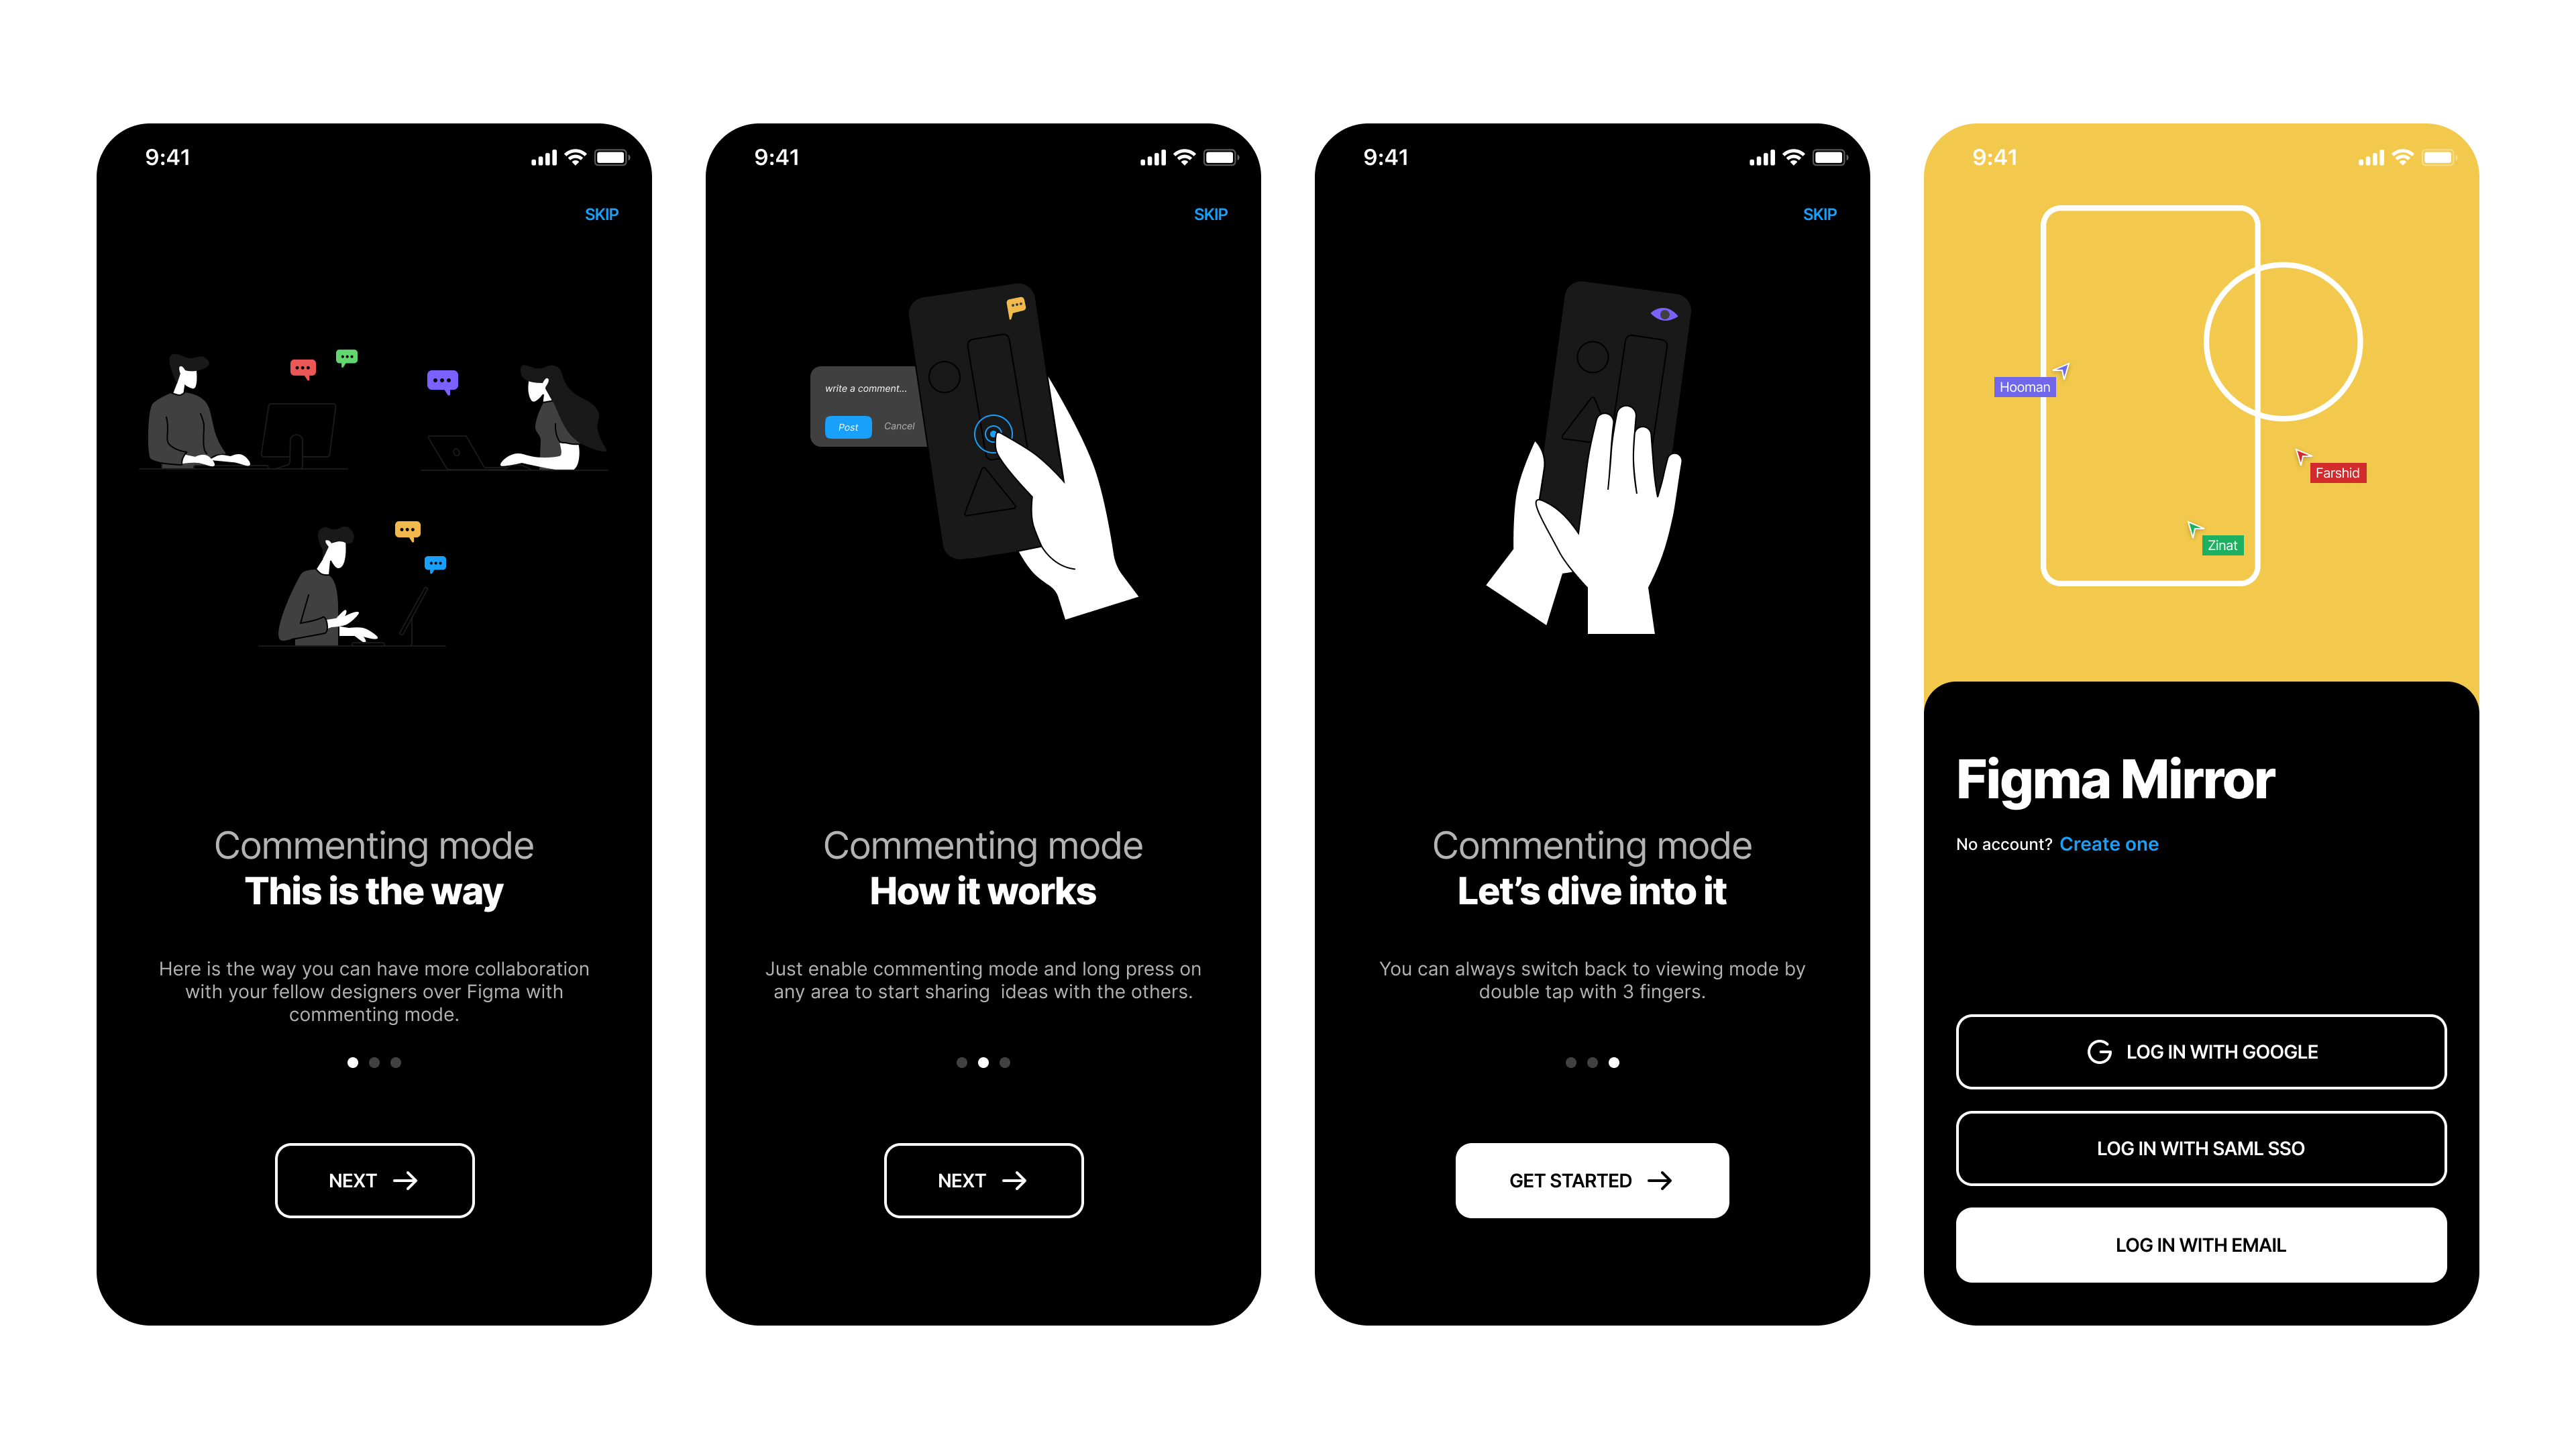 Onboarding and welcome screens of Figma Mirror Redesign